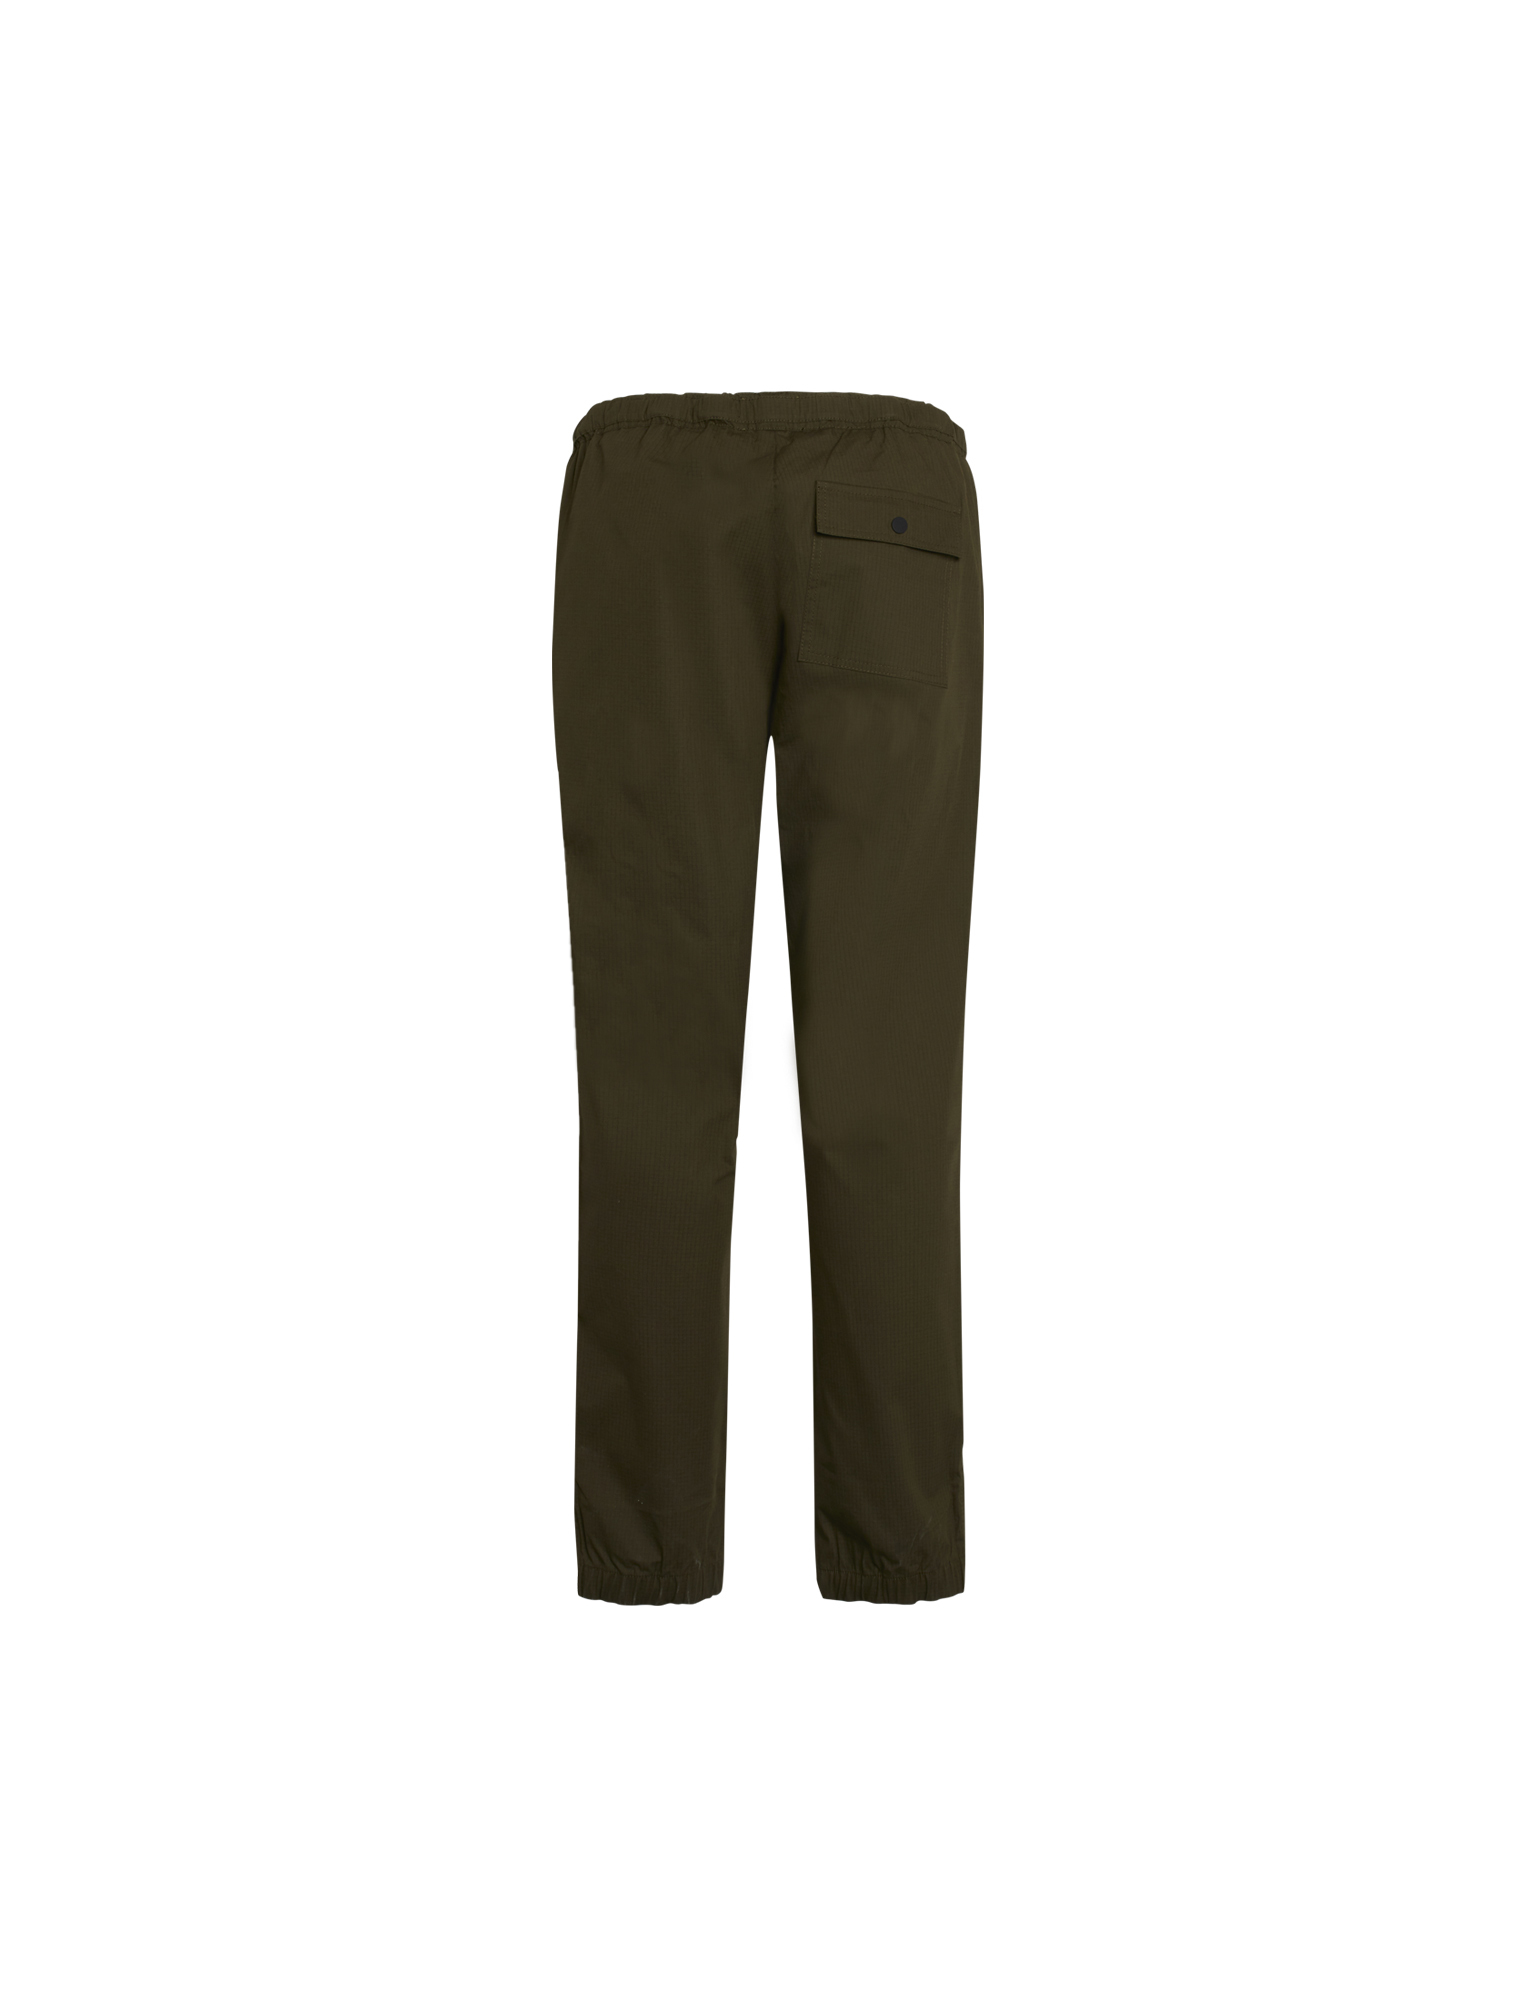 Mads Nørgaard Army Ripstop Picci bukser, olive night, x-large